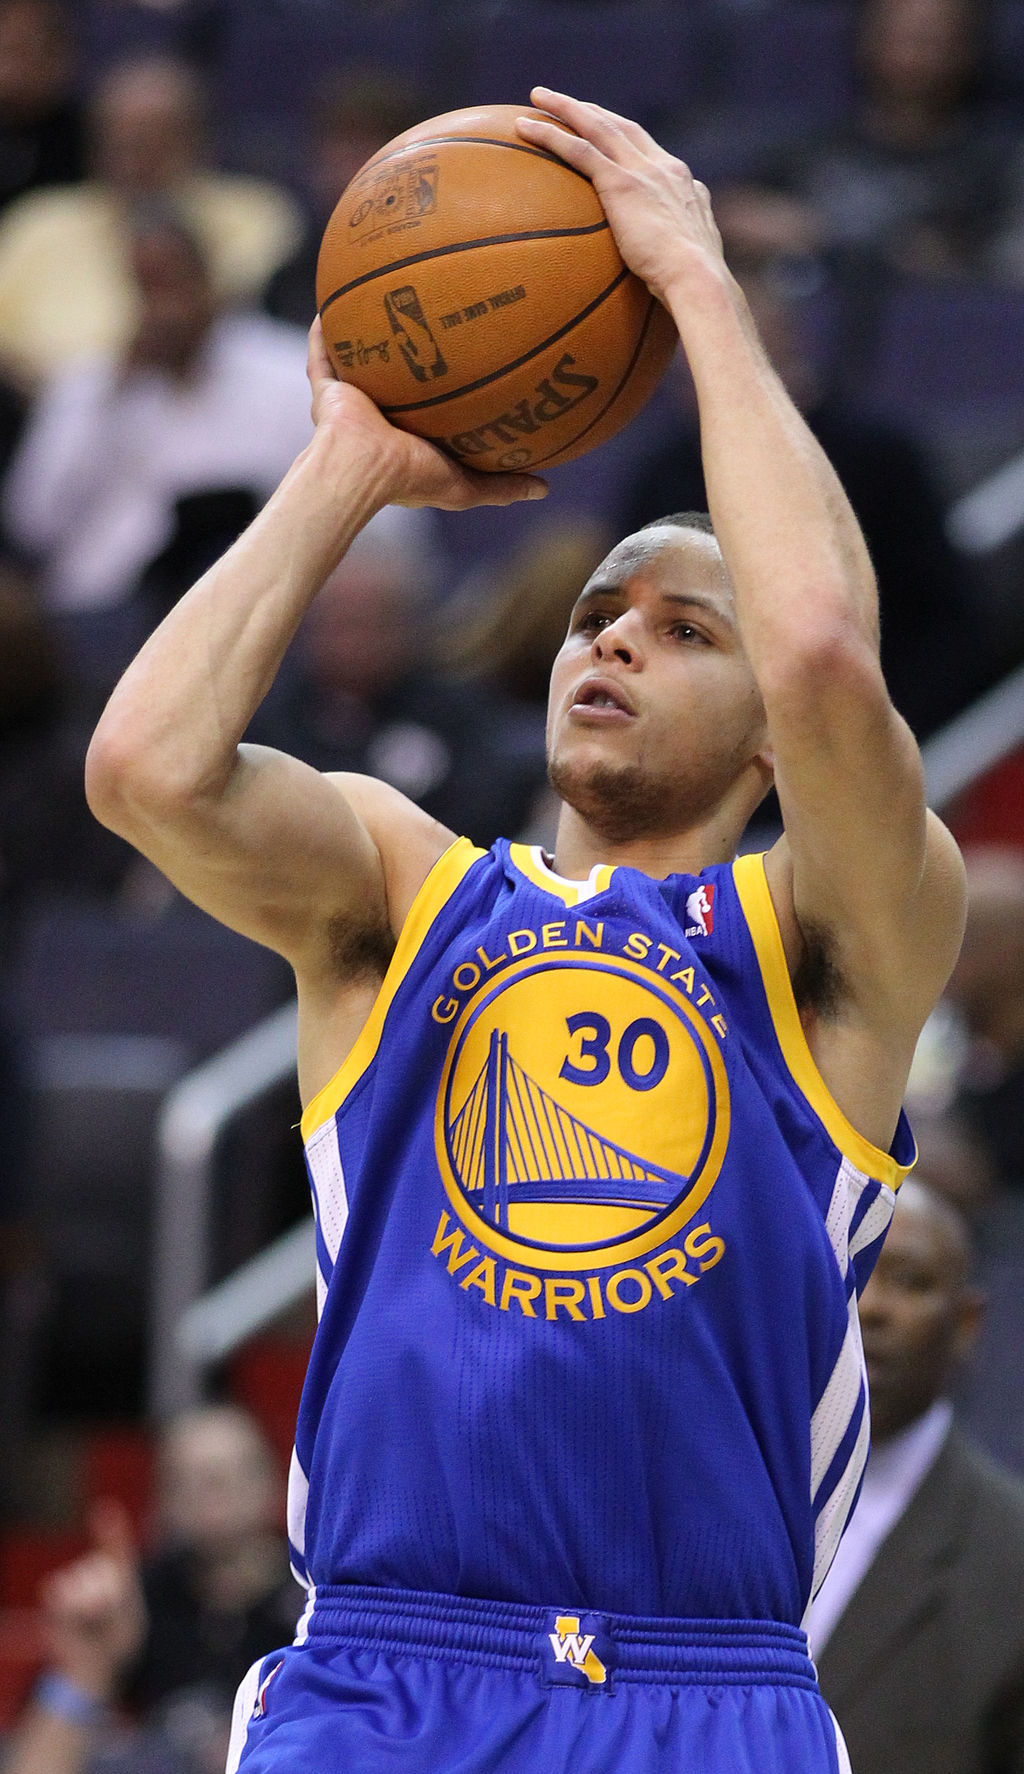 """""""Montessori has helped me become the person I am.""""  Stephen Curry, NBA superstar"""